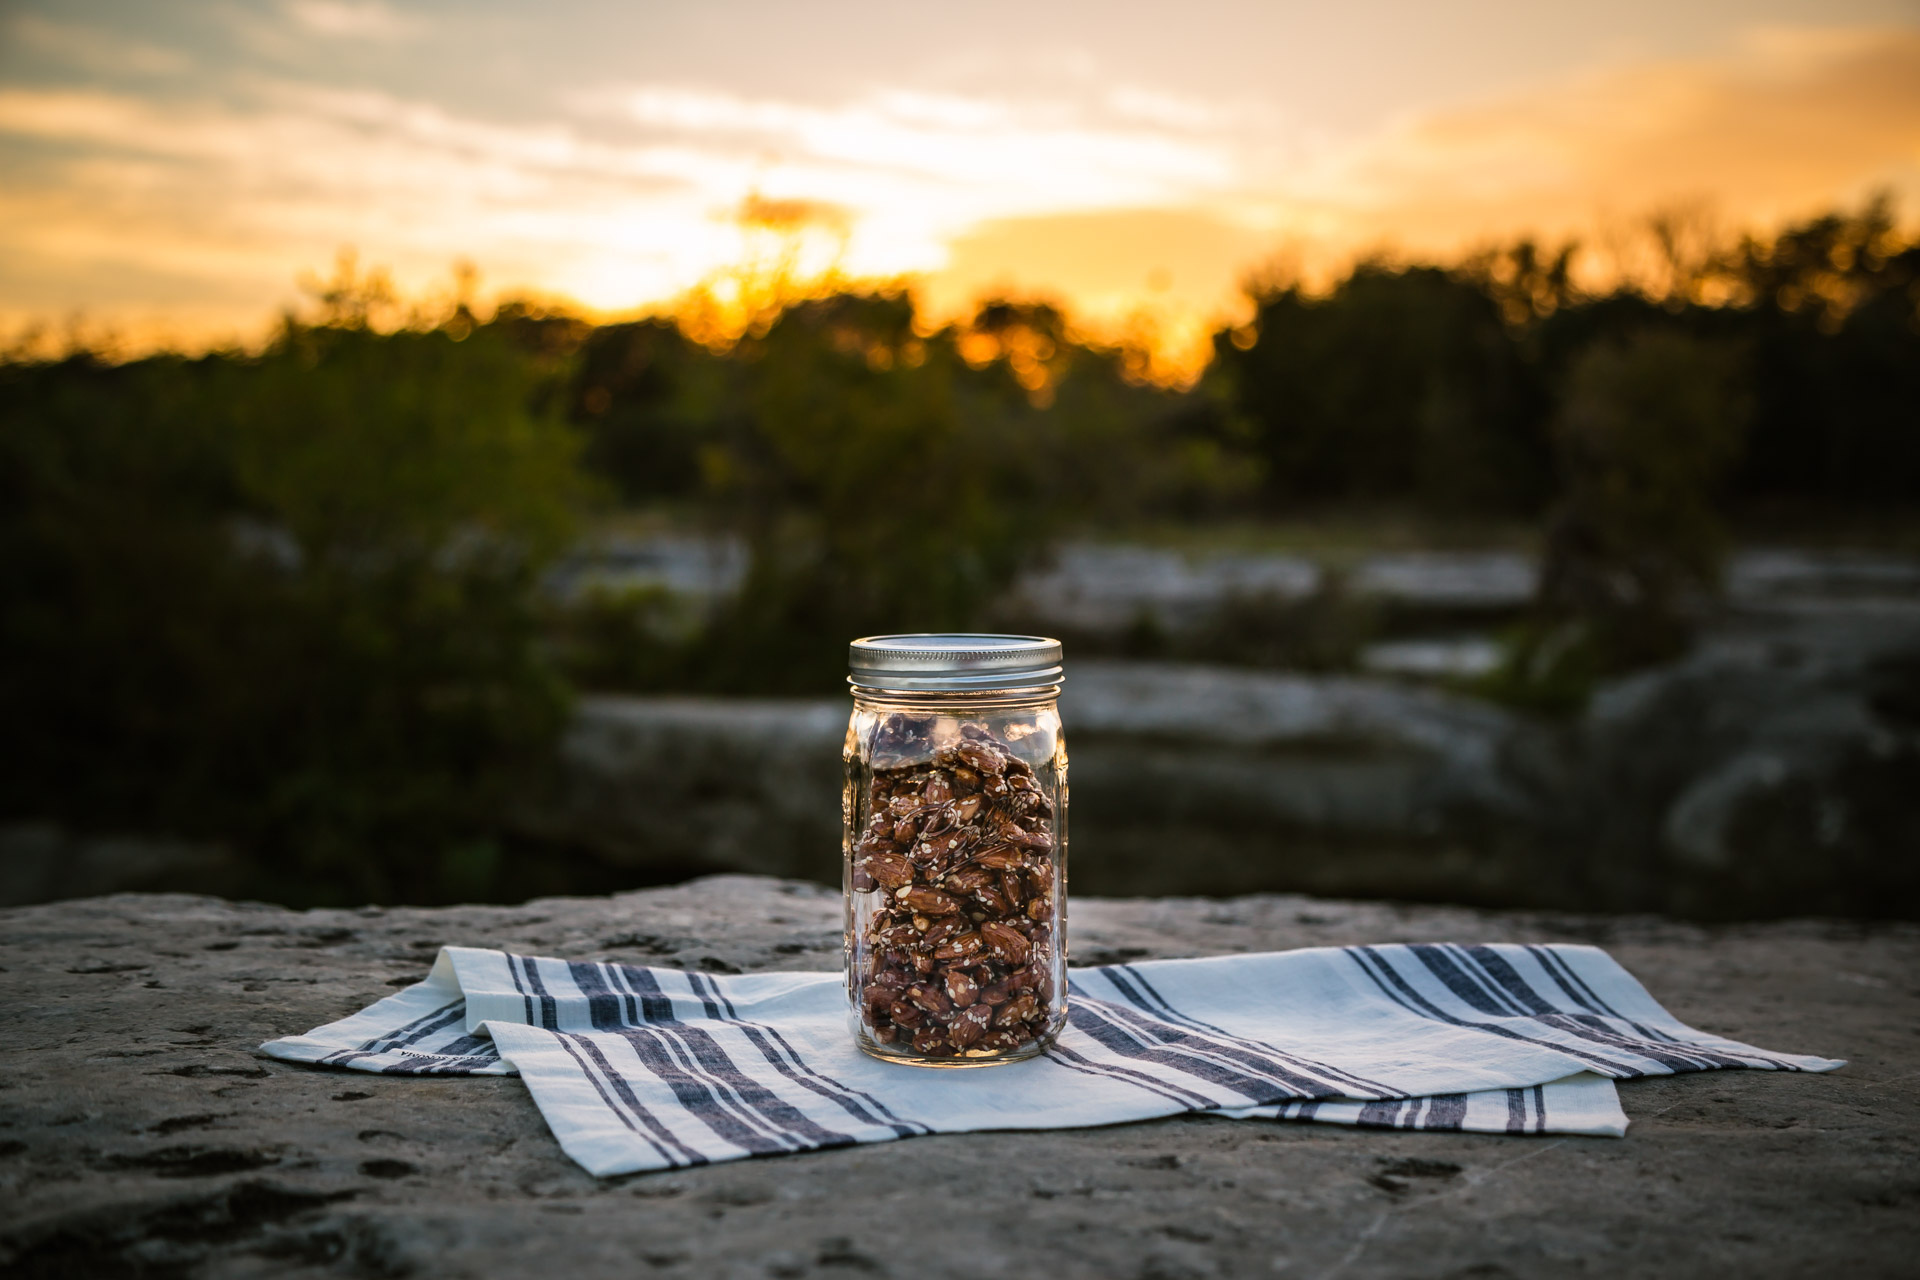 Sunset In A Jar (sunset far)